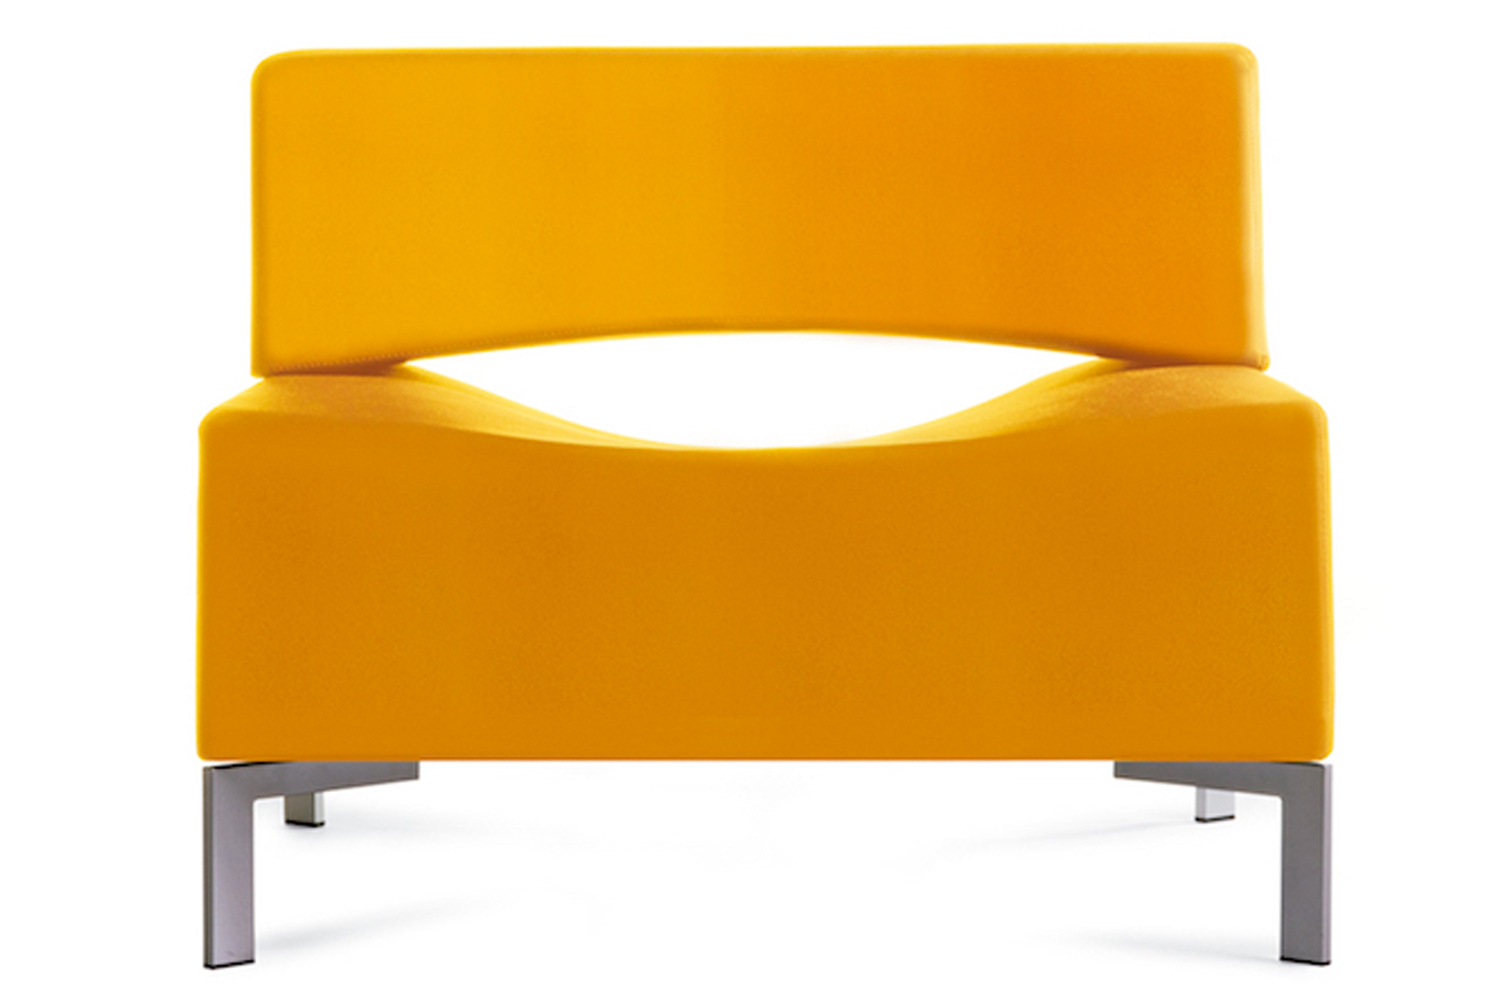 Designed by Burkhard Vogtherr for Kron, the chair uses high-resilience foam in each seat cushion.